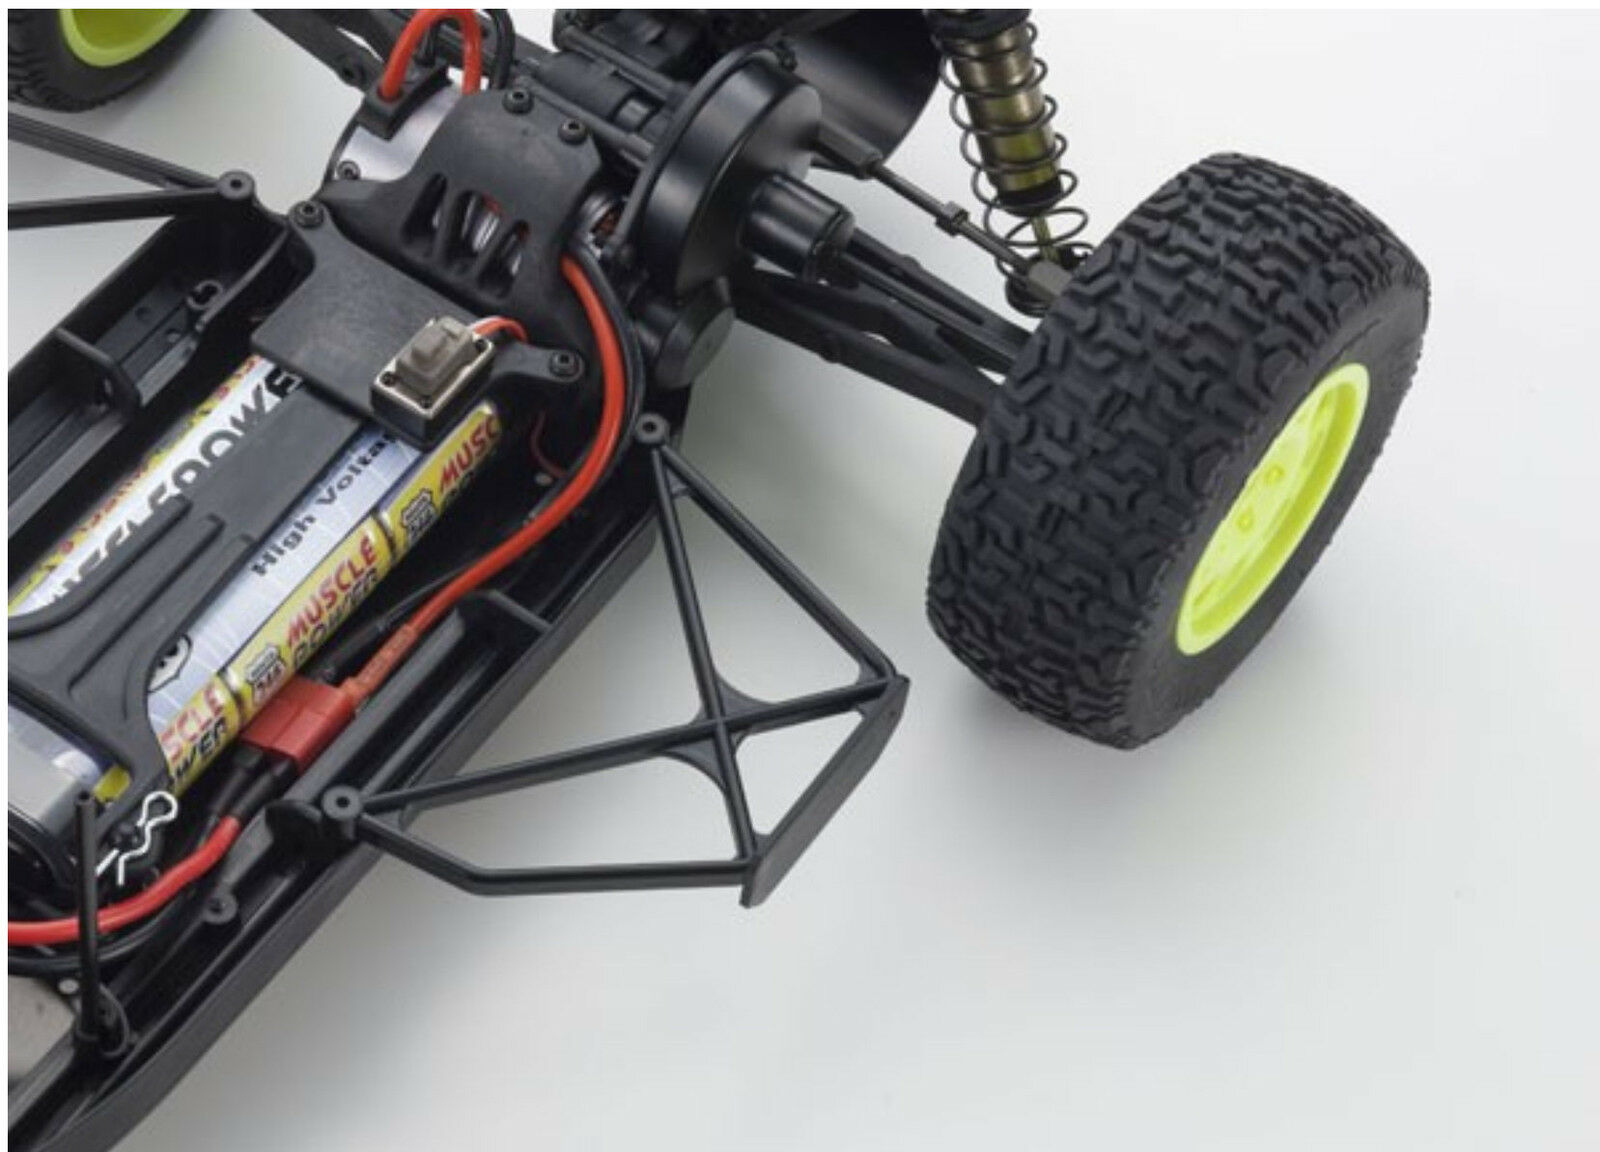 Kyosho 30859rs Ultima Ultima 30859rs SC6 1 10 2wd RTR ddrive 3300kv  KT331P df5bc9